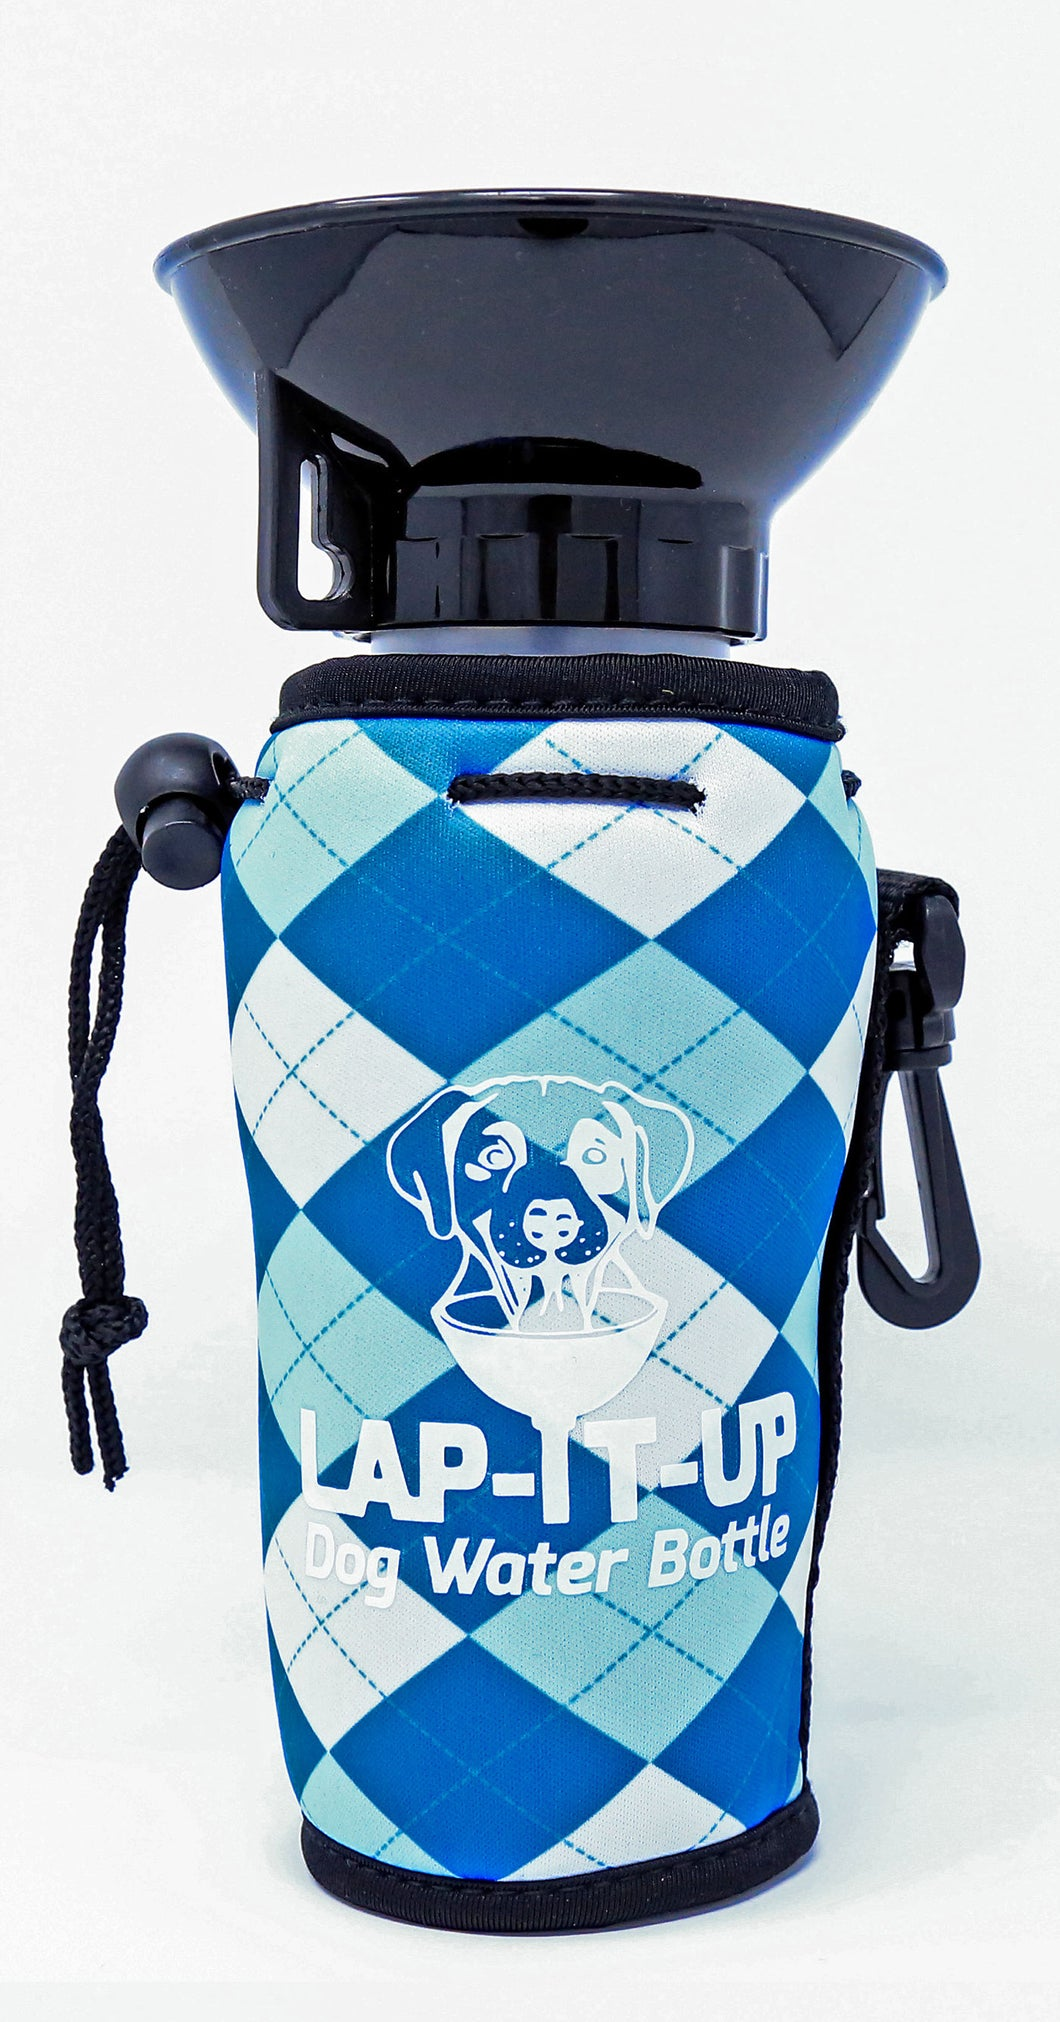 Lap-It-Up Dog Water Bottle - Plaid - Blue & White